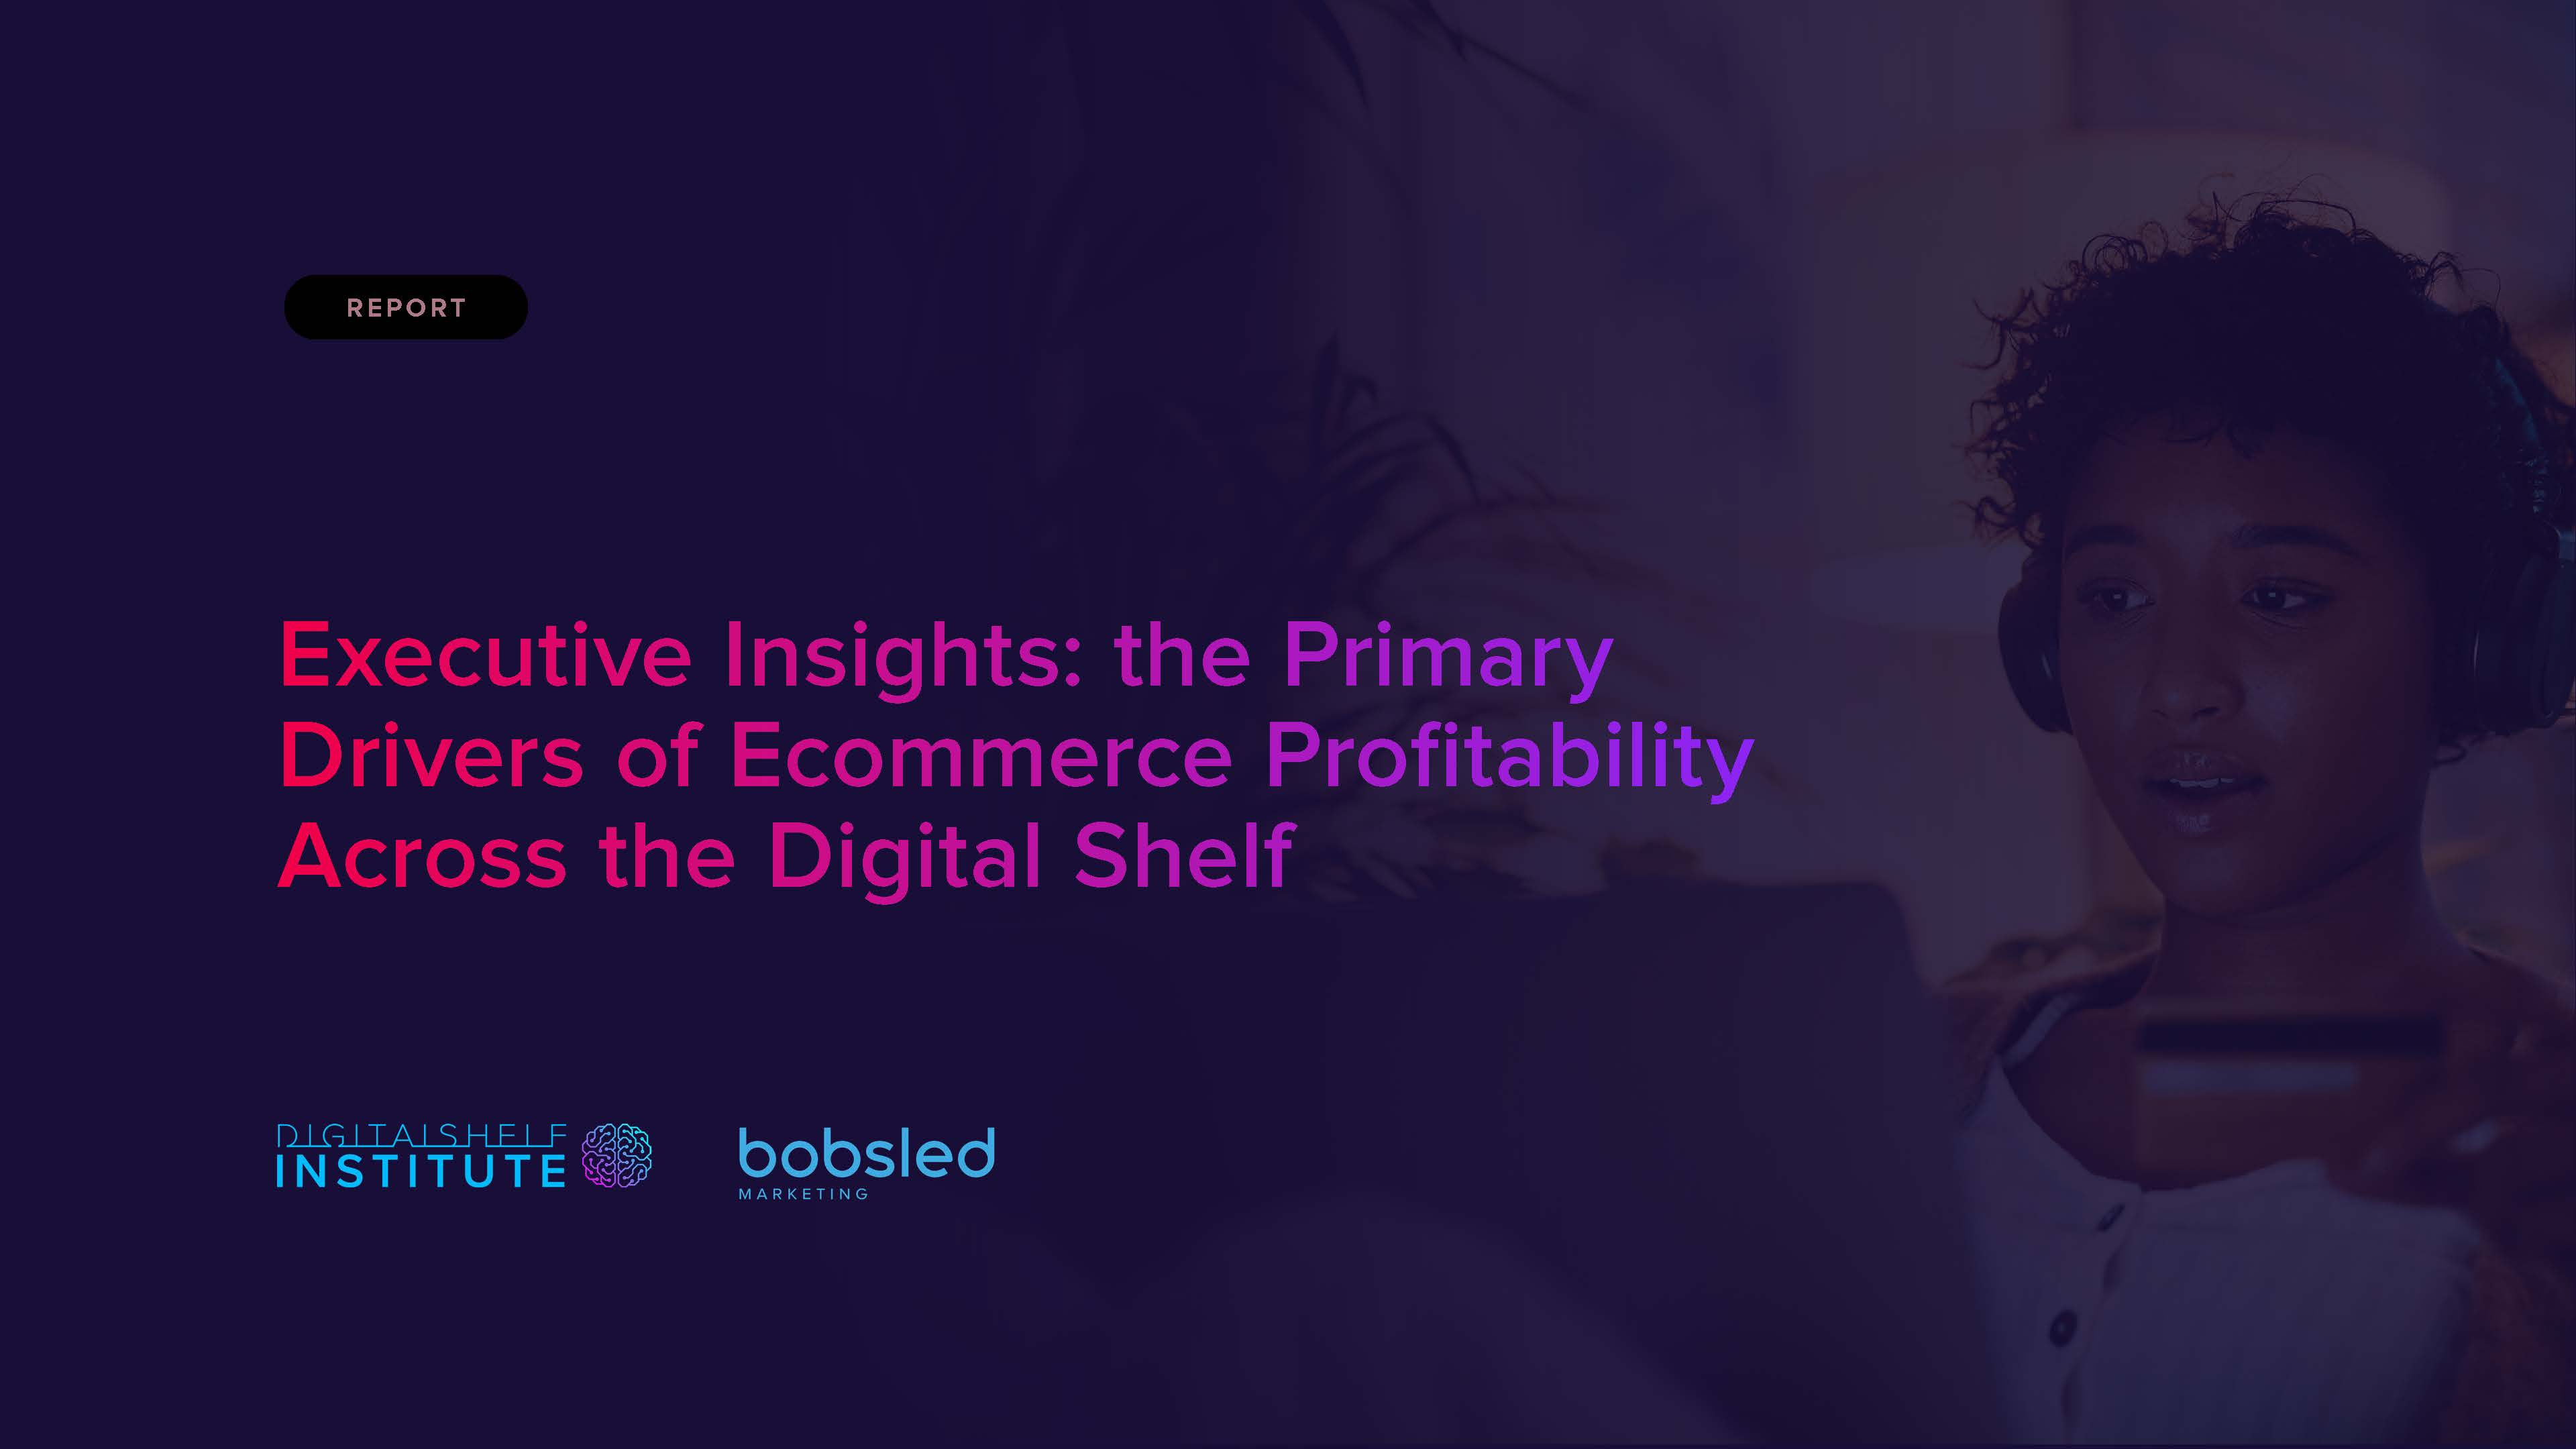 Executive Insights - the Primary Drivers of Ecommerce Profitability Across the Digital Shelf